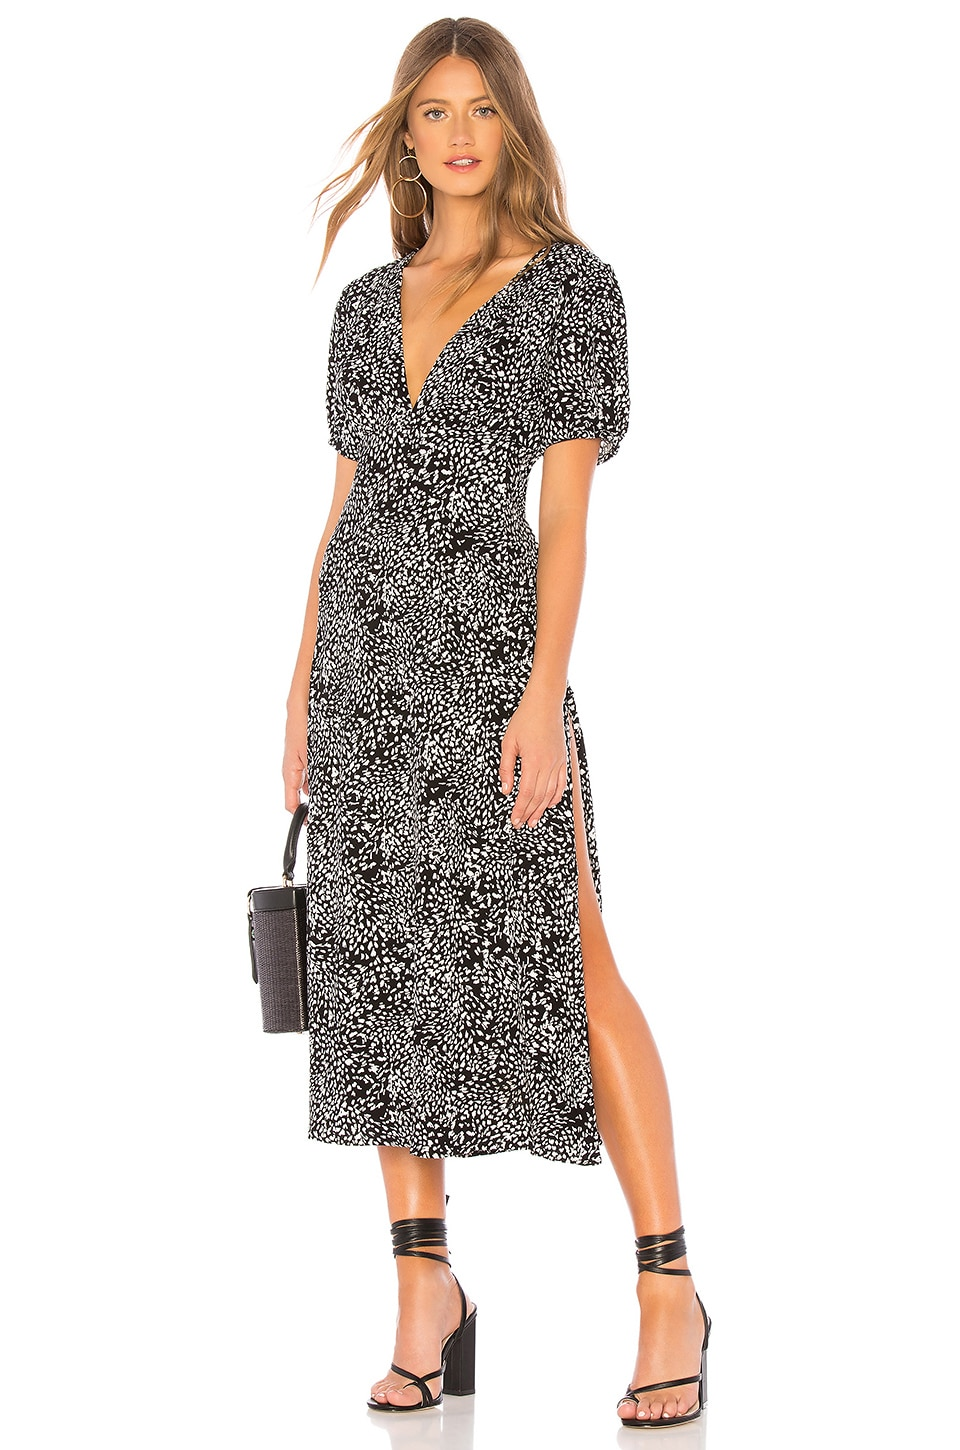 Looking For Love Printed Woven Midi Dress, Black